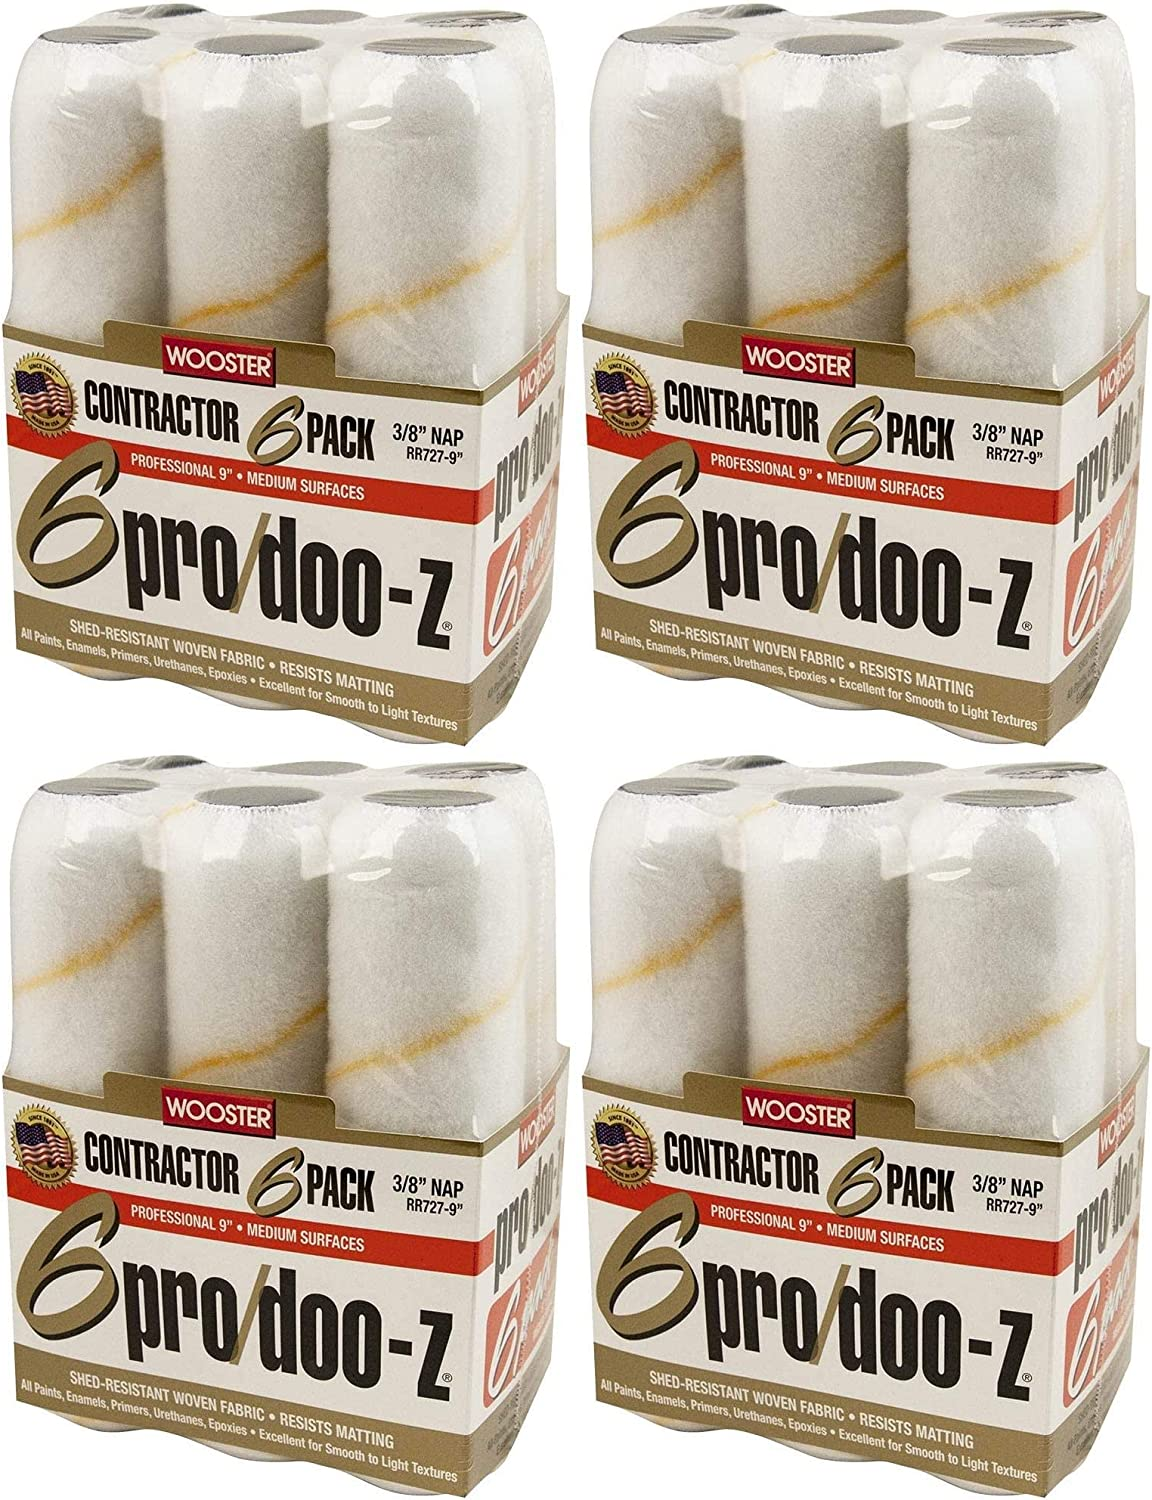 Wooster Brush RR727-9 Pro Doo-Z Weekly update Nap 8-Inch 6-Pack Pa 3 Rollers Sale SALE% OFF